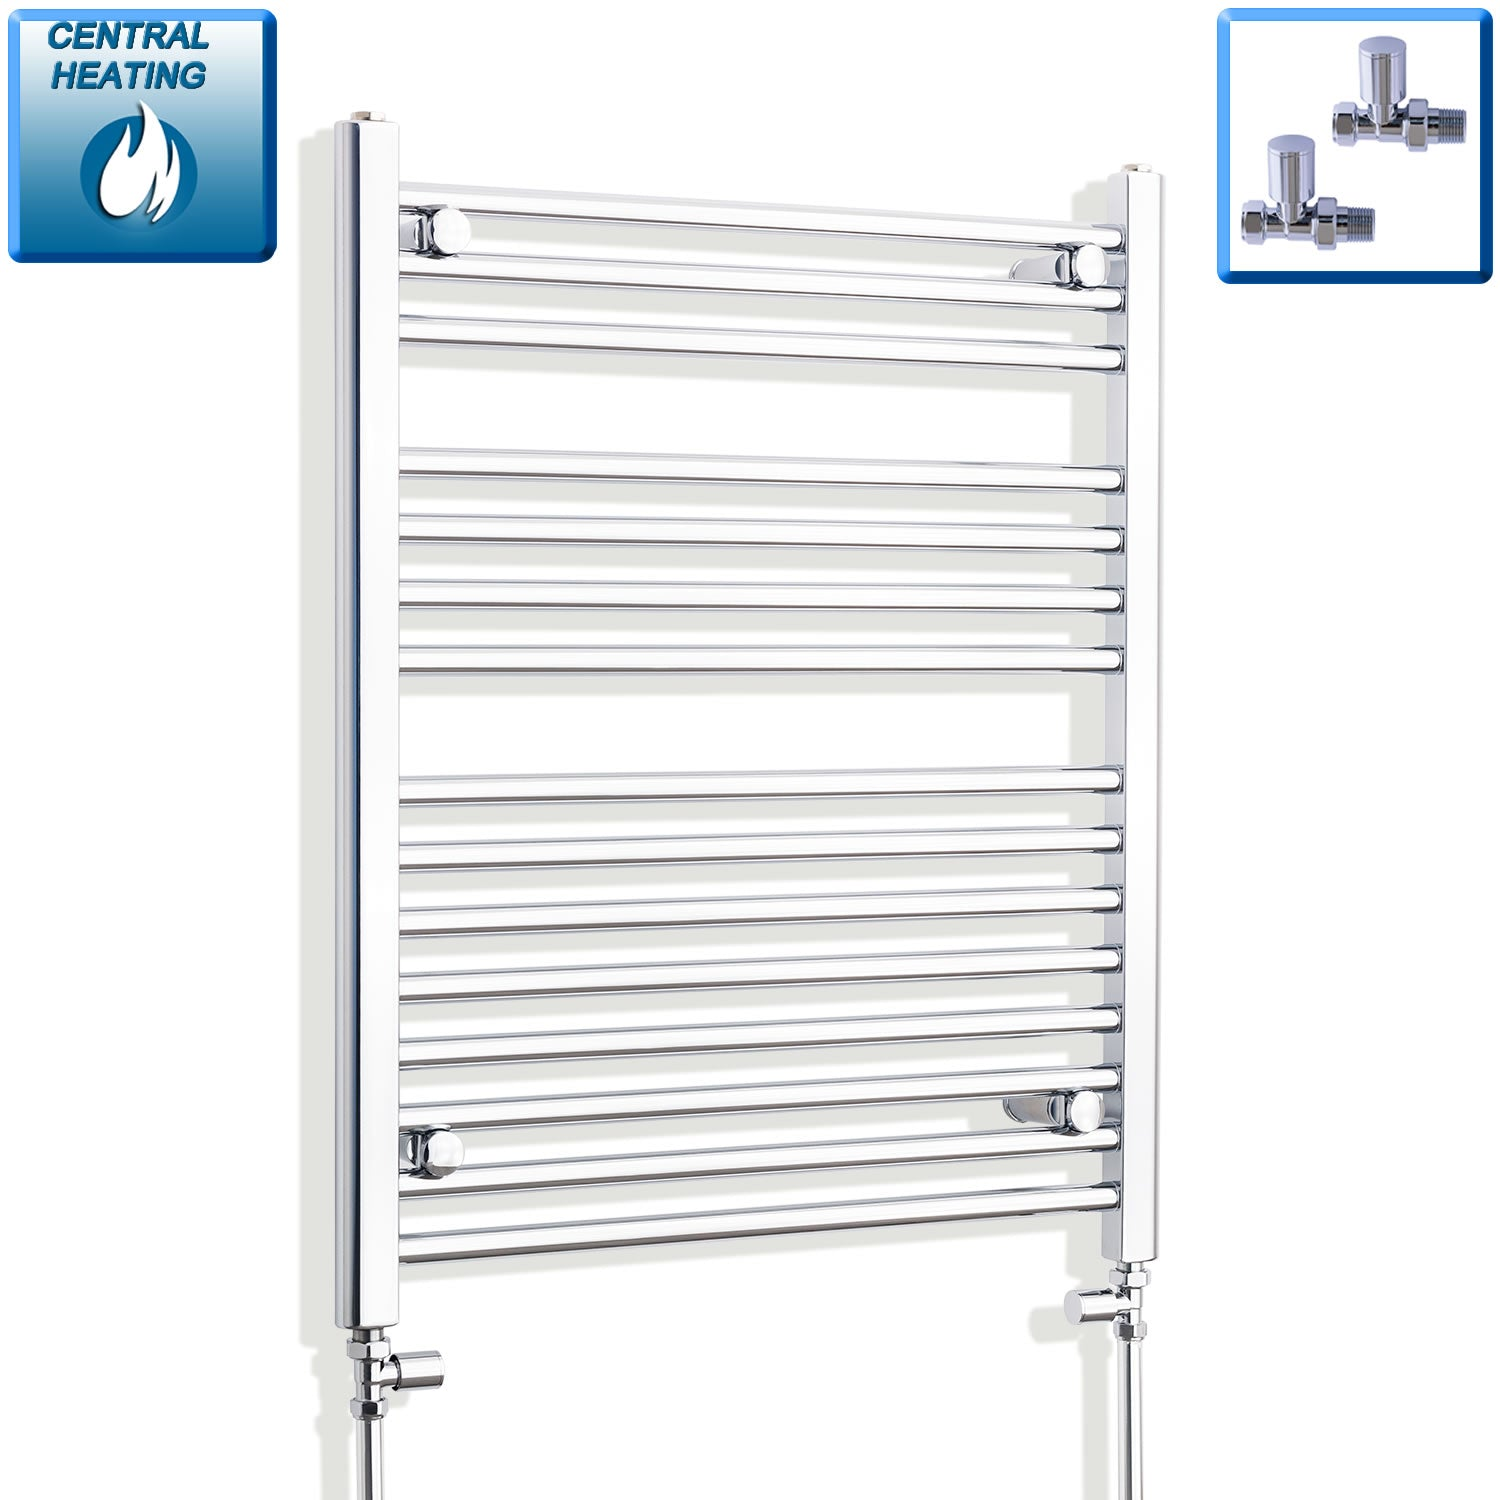 700mm Wide 800mm High Curved Chrome Heated Towel Rail Radiator HTR,With Straight Valve